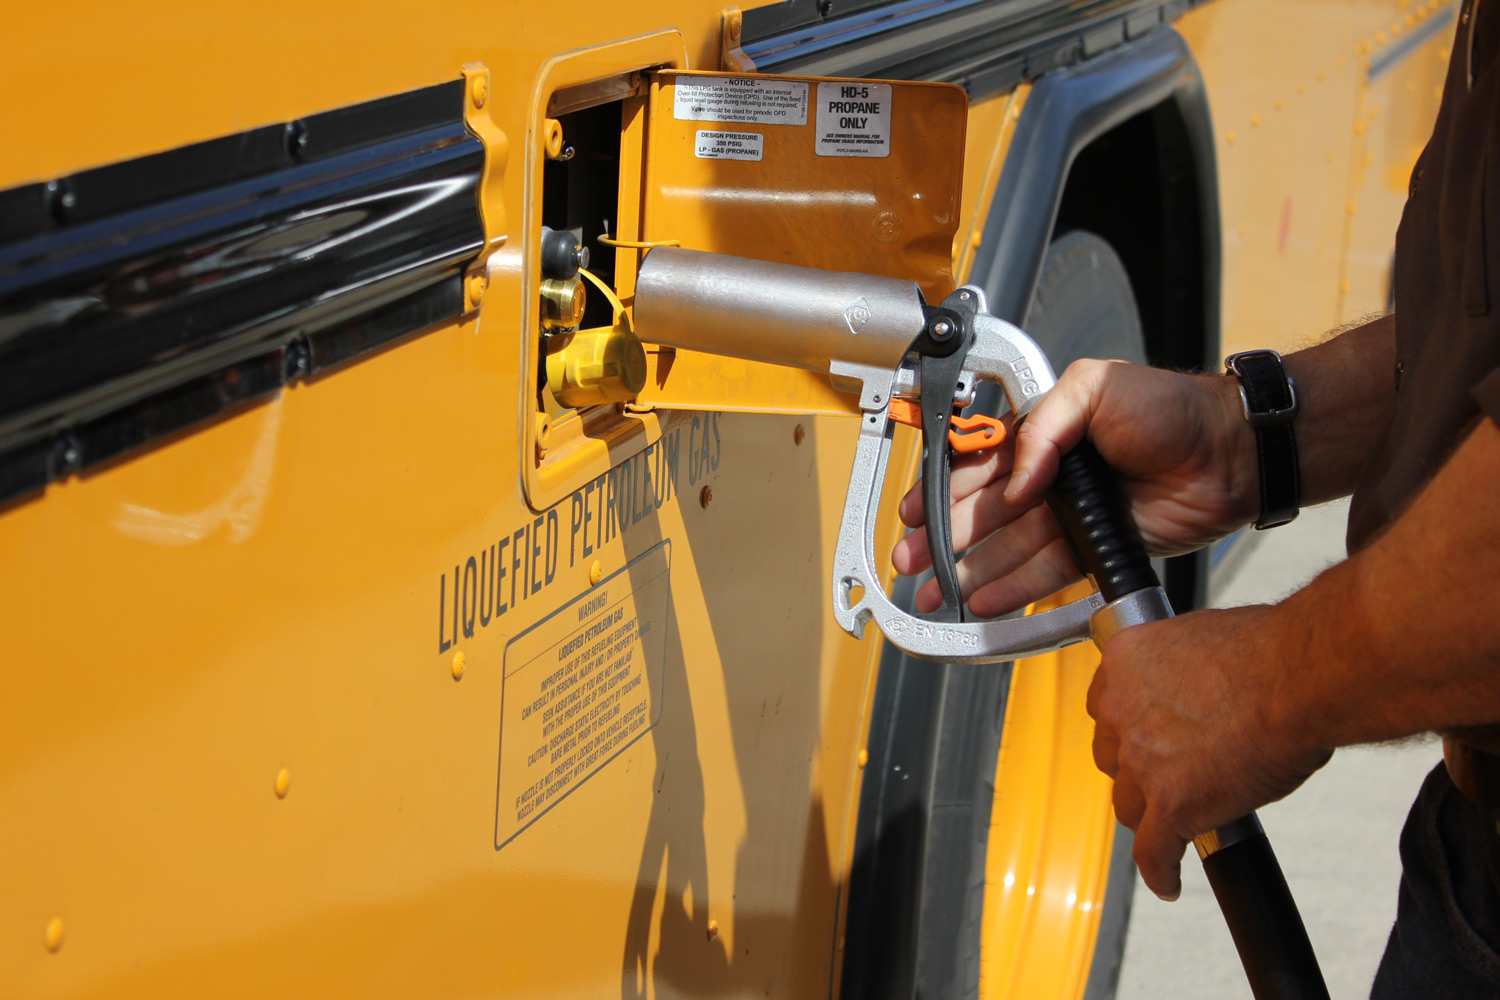 An image of a person filling a bus.